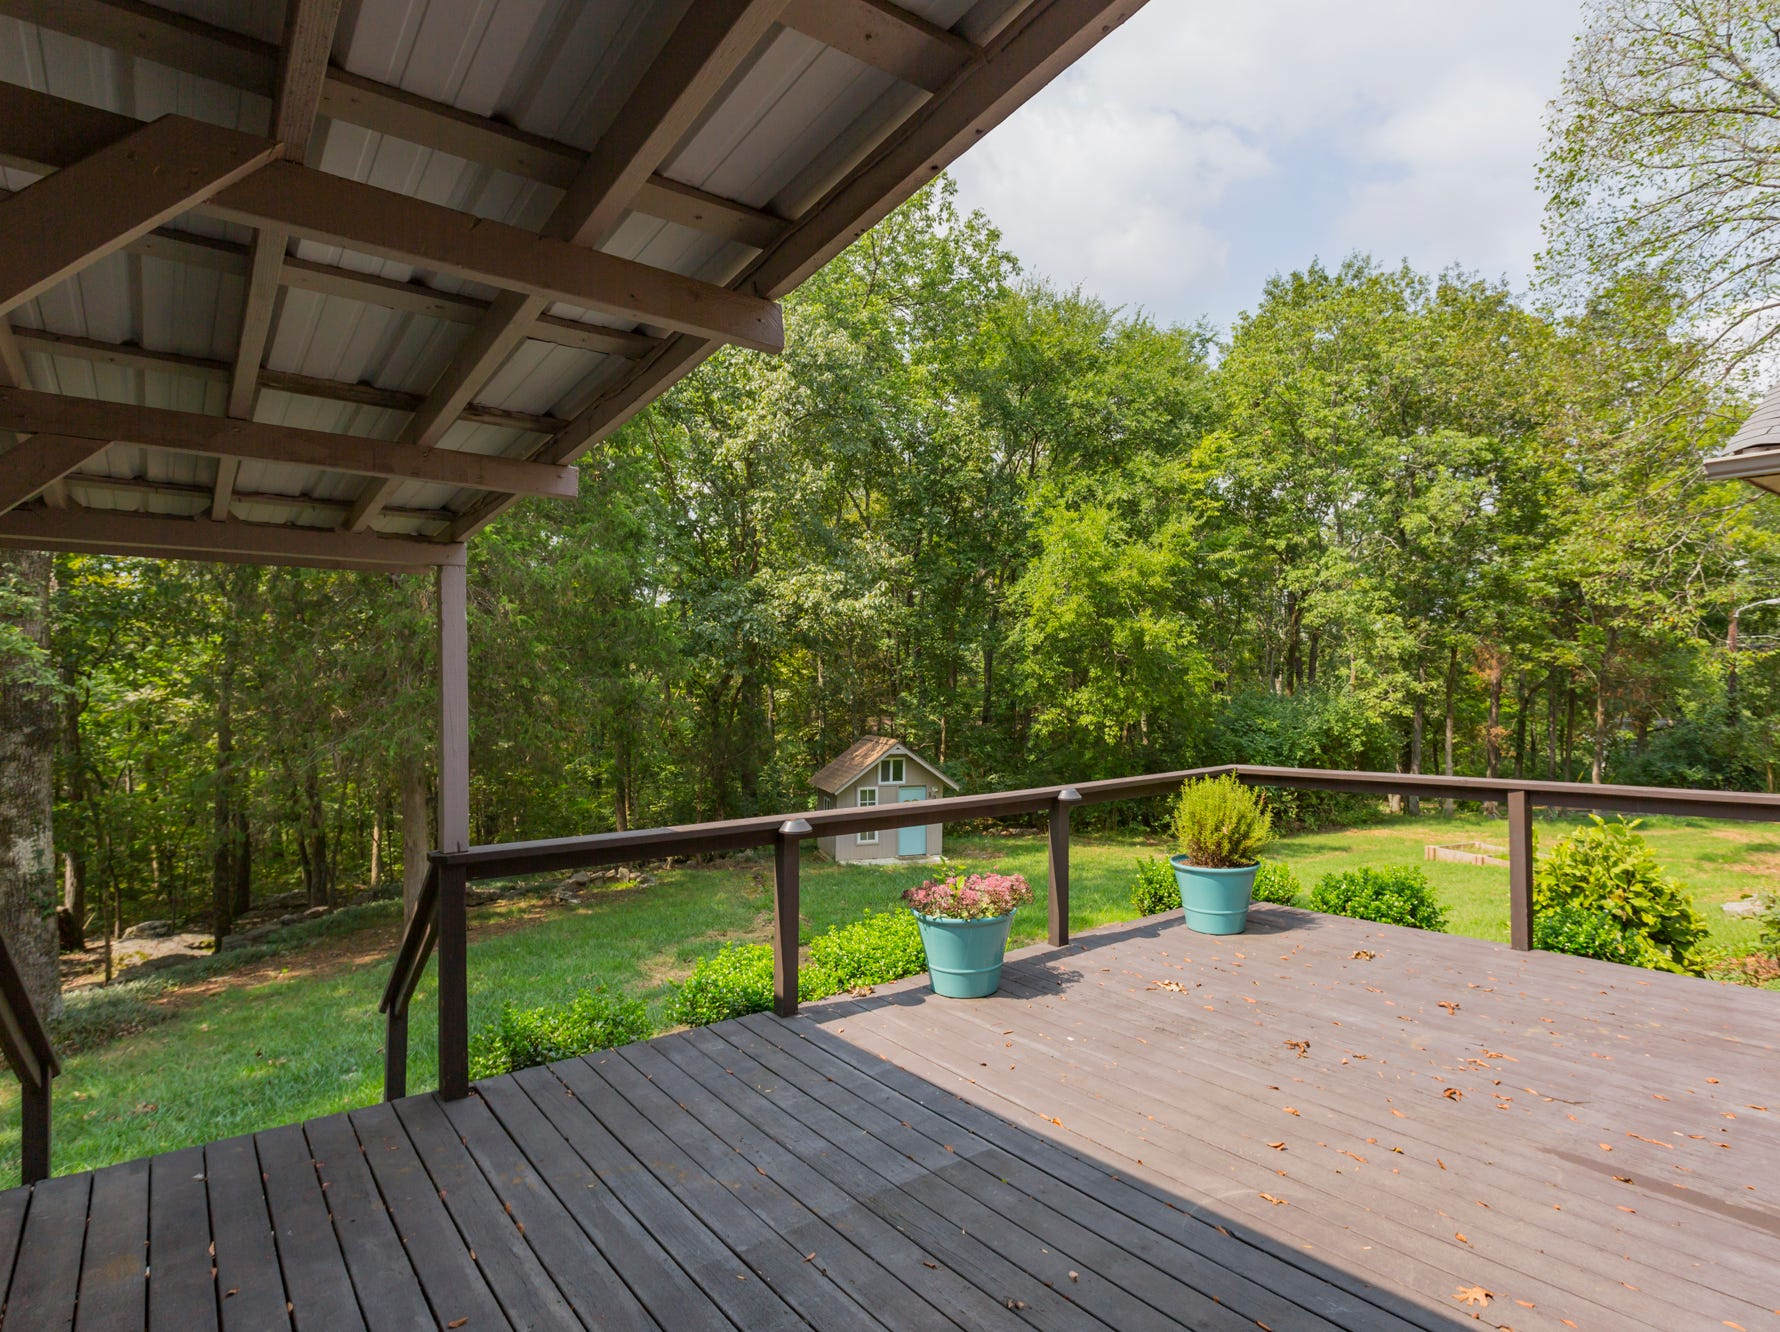 This back deck offers both covered and uncovered spaces that overlook the home's private backyard.